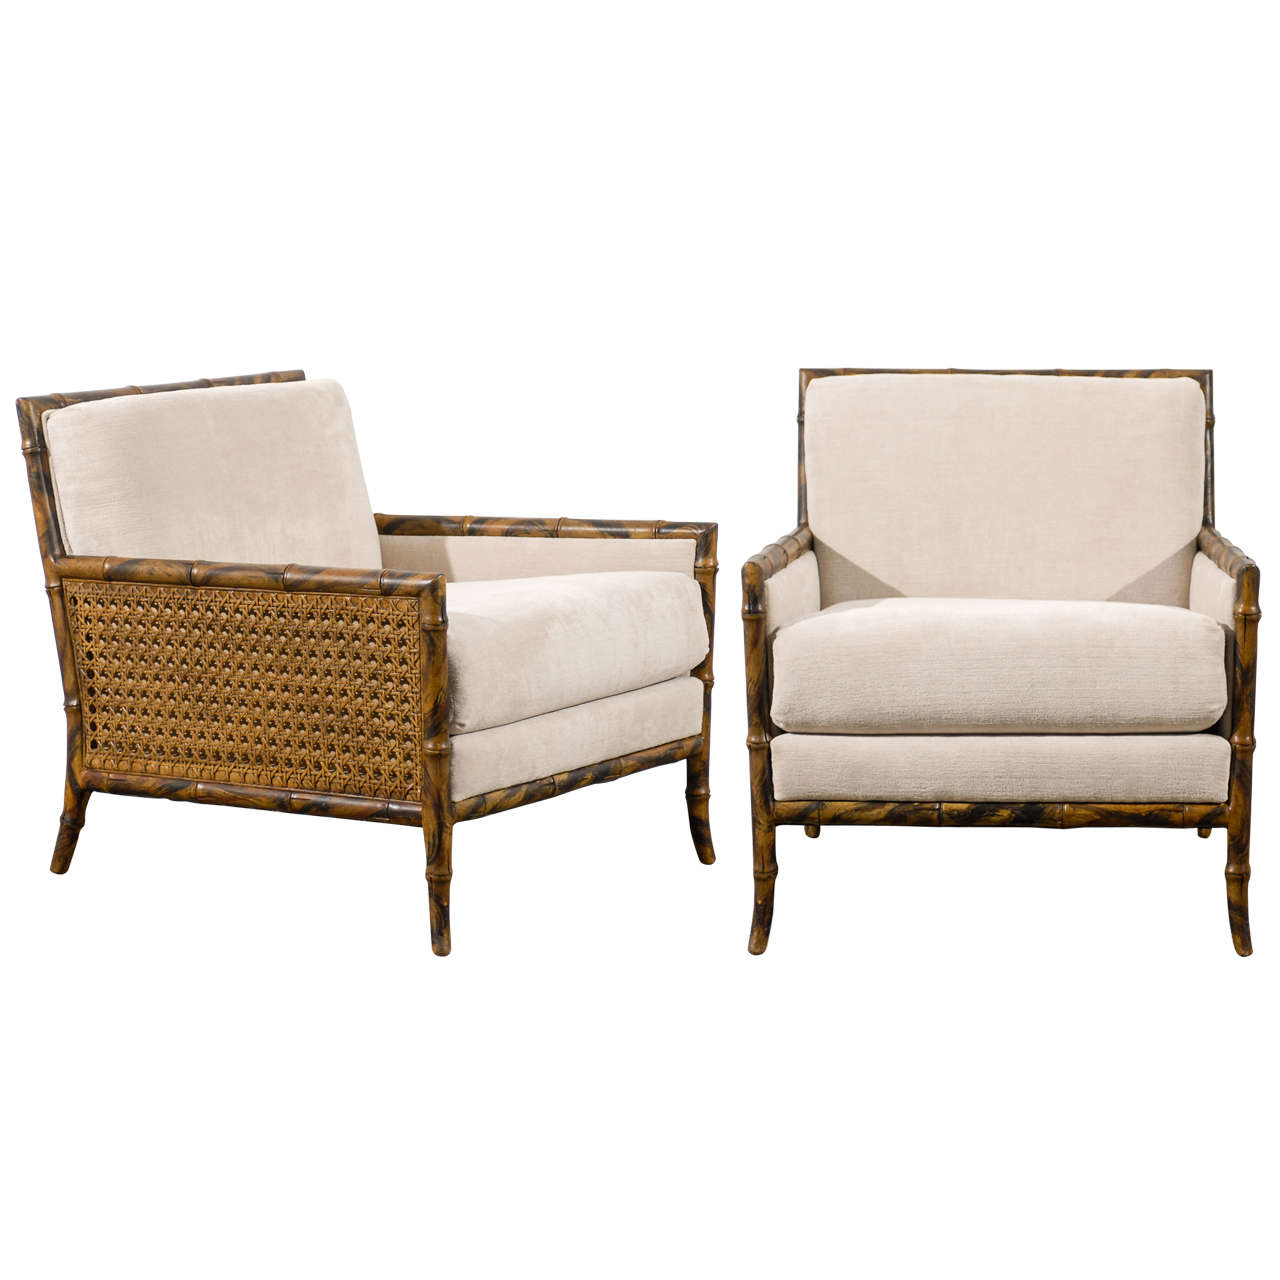 Ordinaire Superb Pair Of Gibbings Style Faux Bamboo Lounge/Club Chairs For Sale